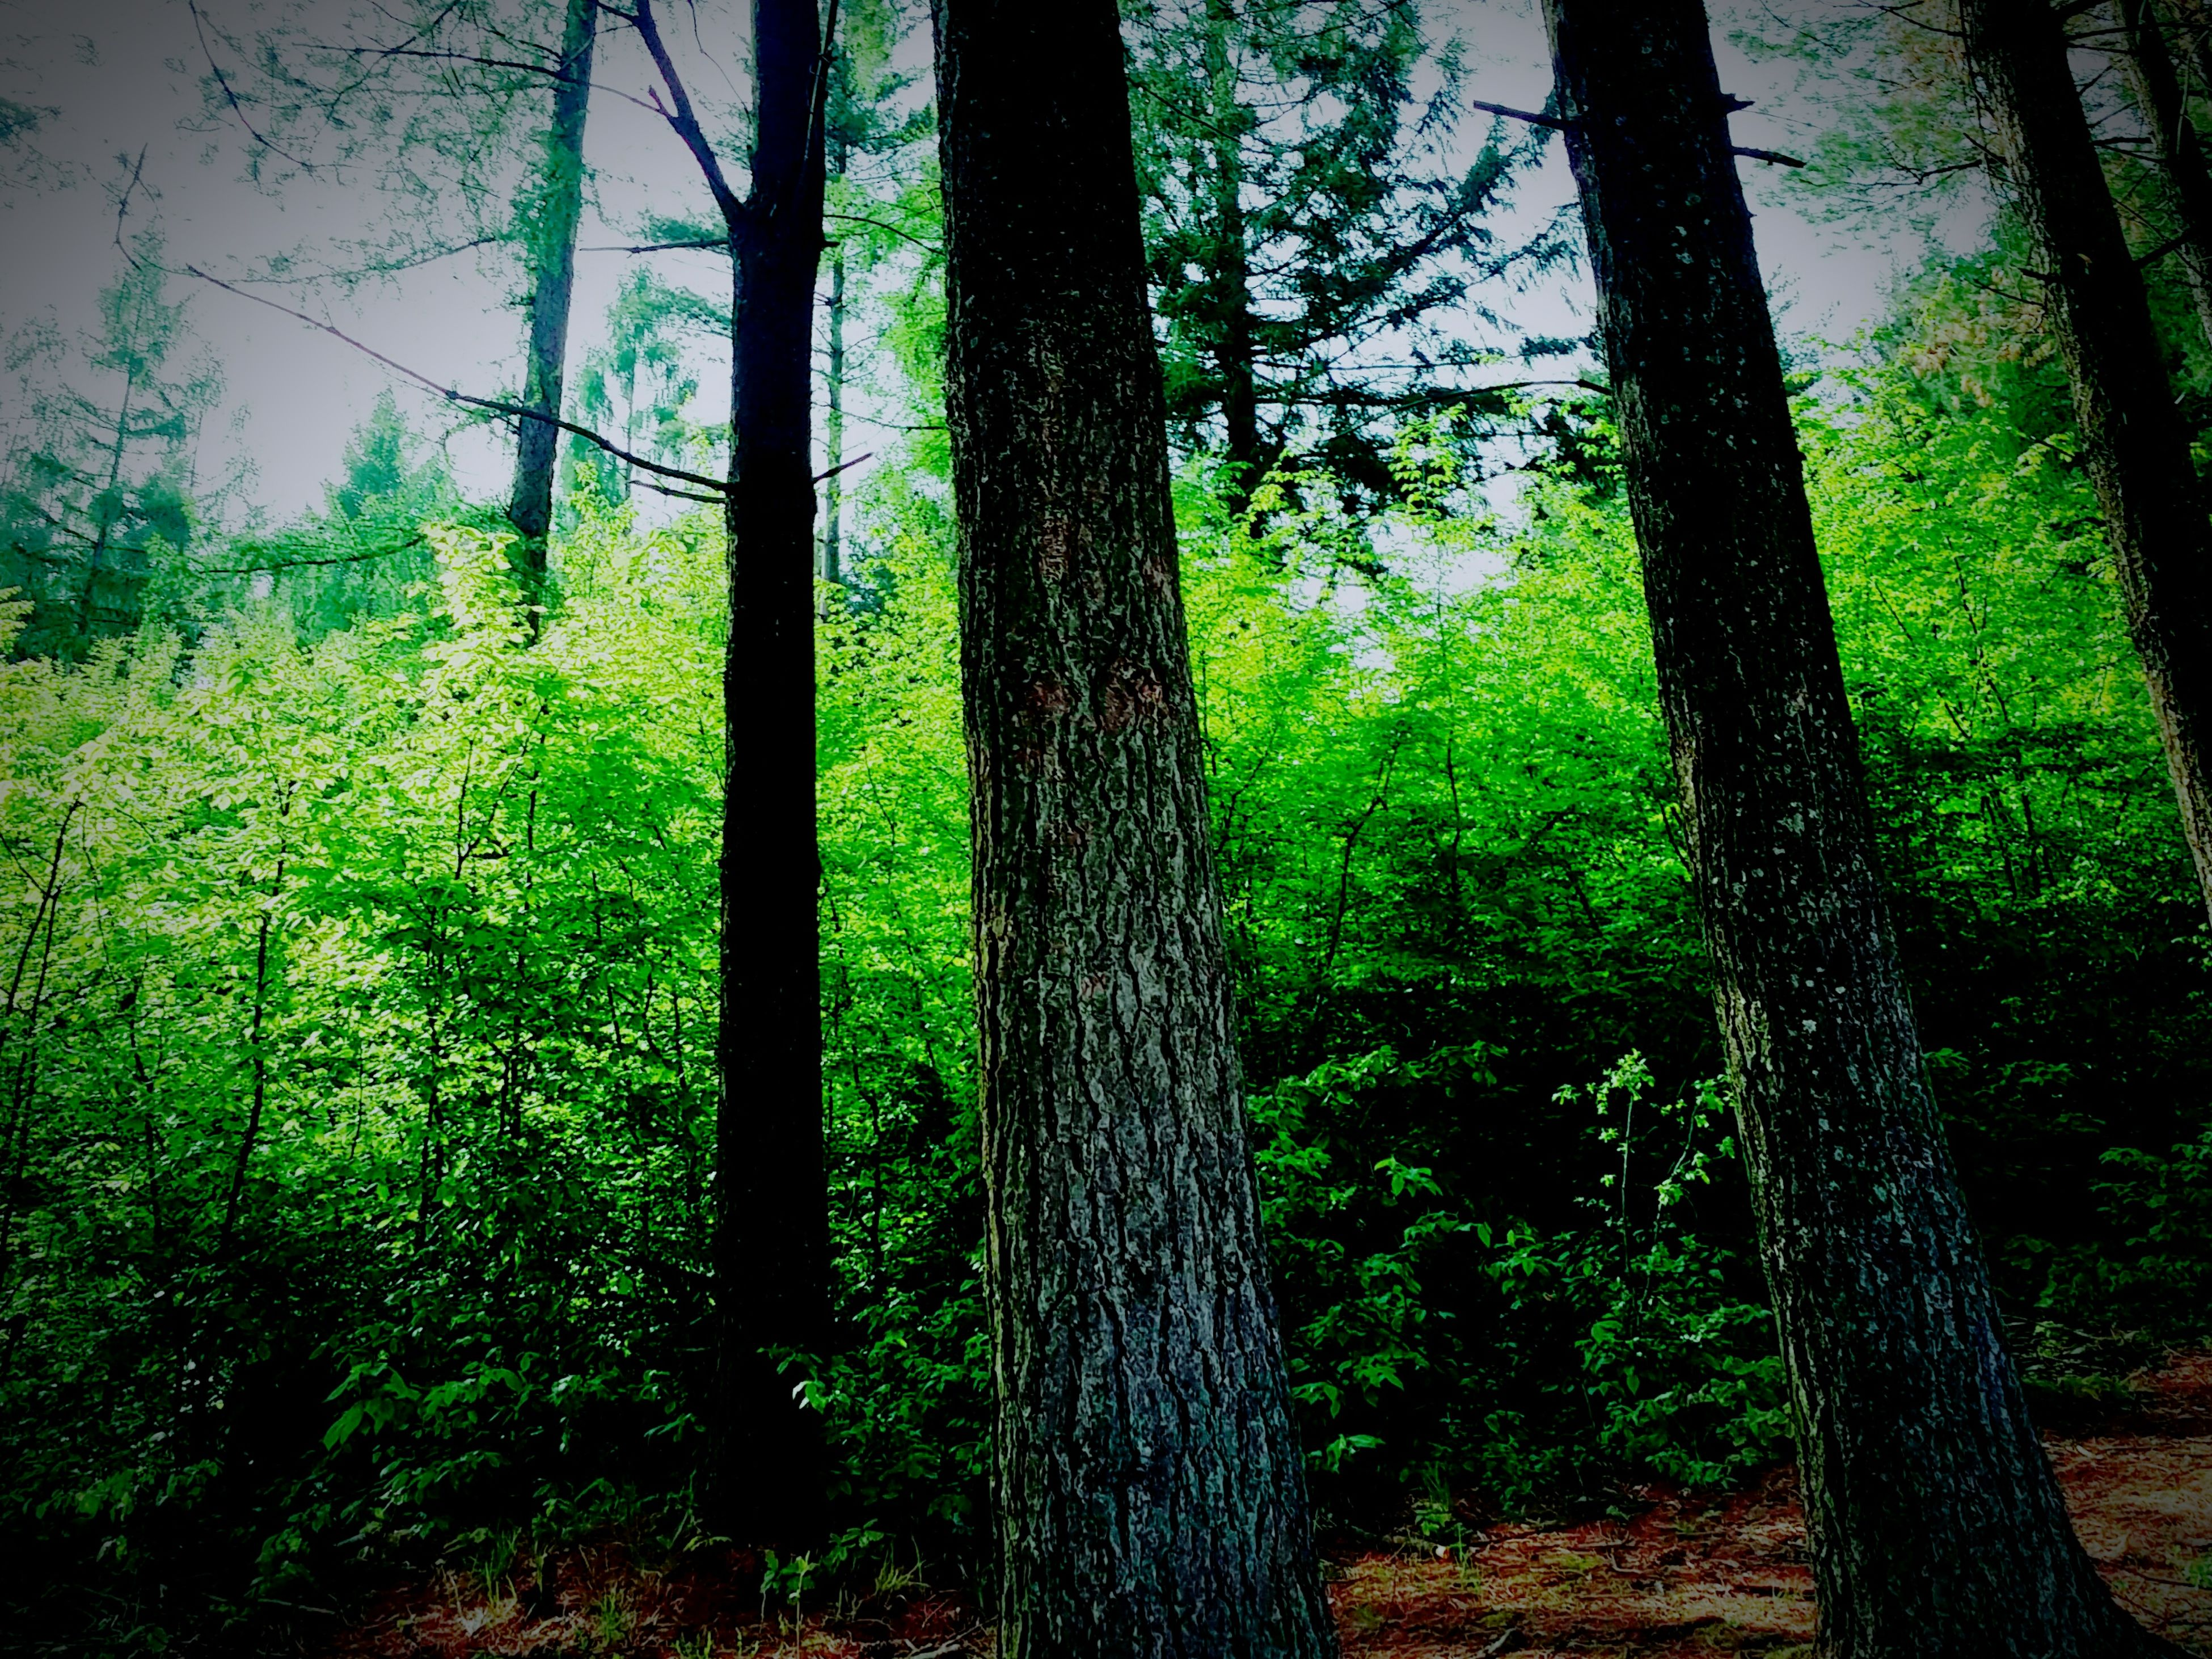 tree, tree trunk, forest, growth, tranquility, nature, grass, woodland, tranquil scene, field, green color, beauty in nature, landscape, sunlight, branch, plant, day, scenics, outdoors, non-urban scene